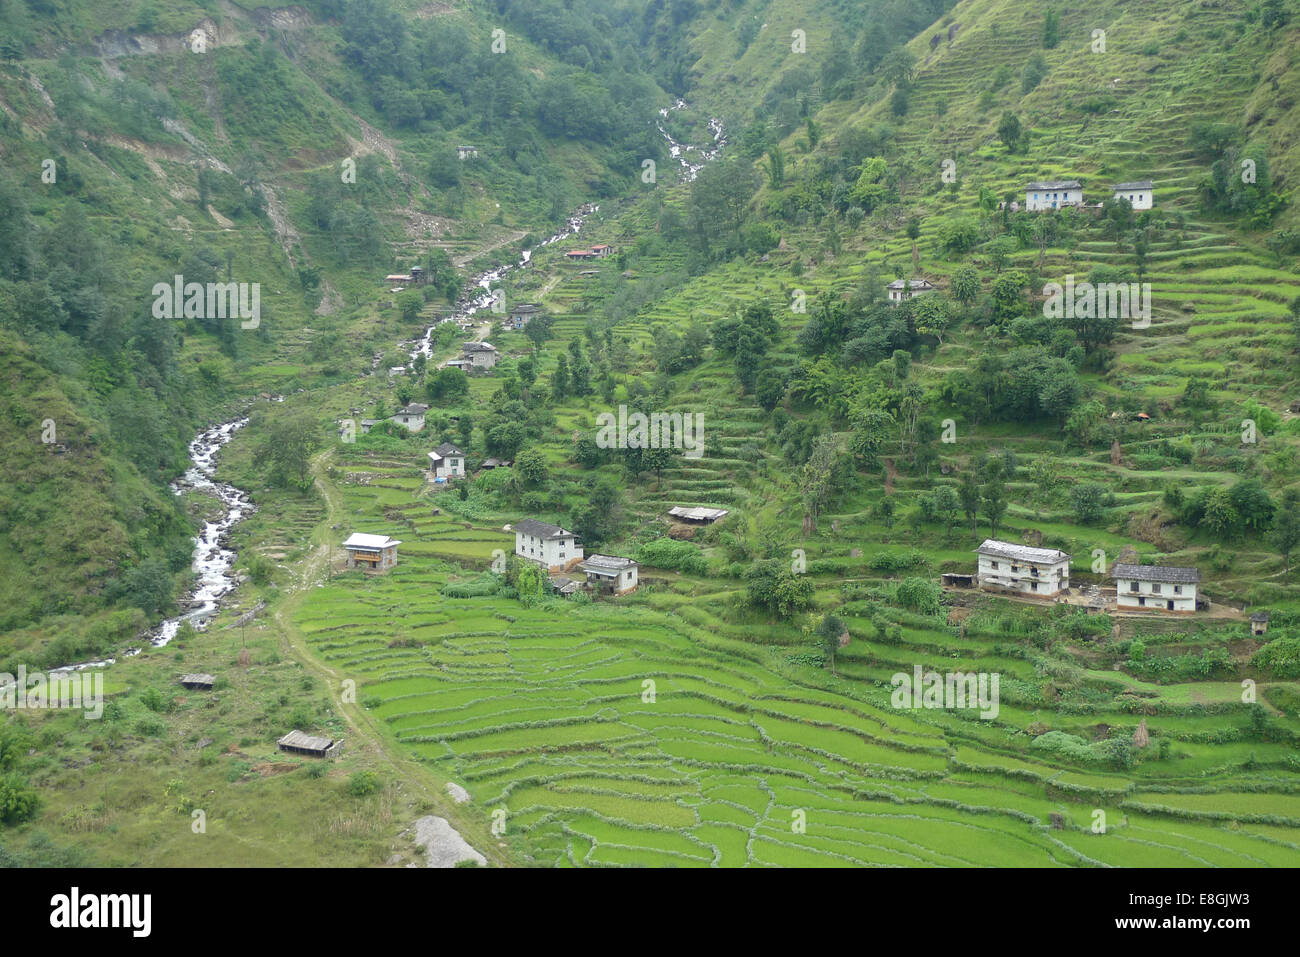 View of houses on hill and terraced fields - Stock Image